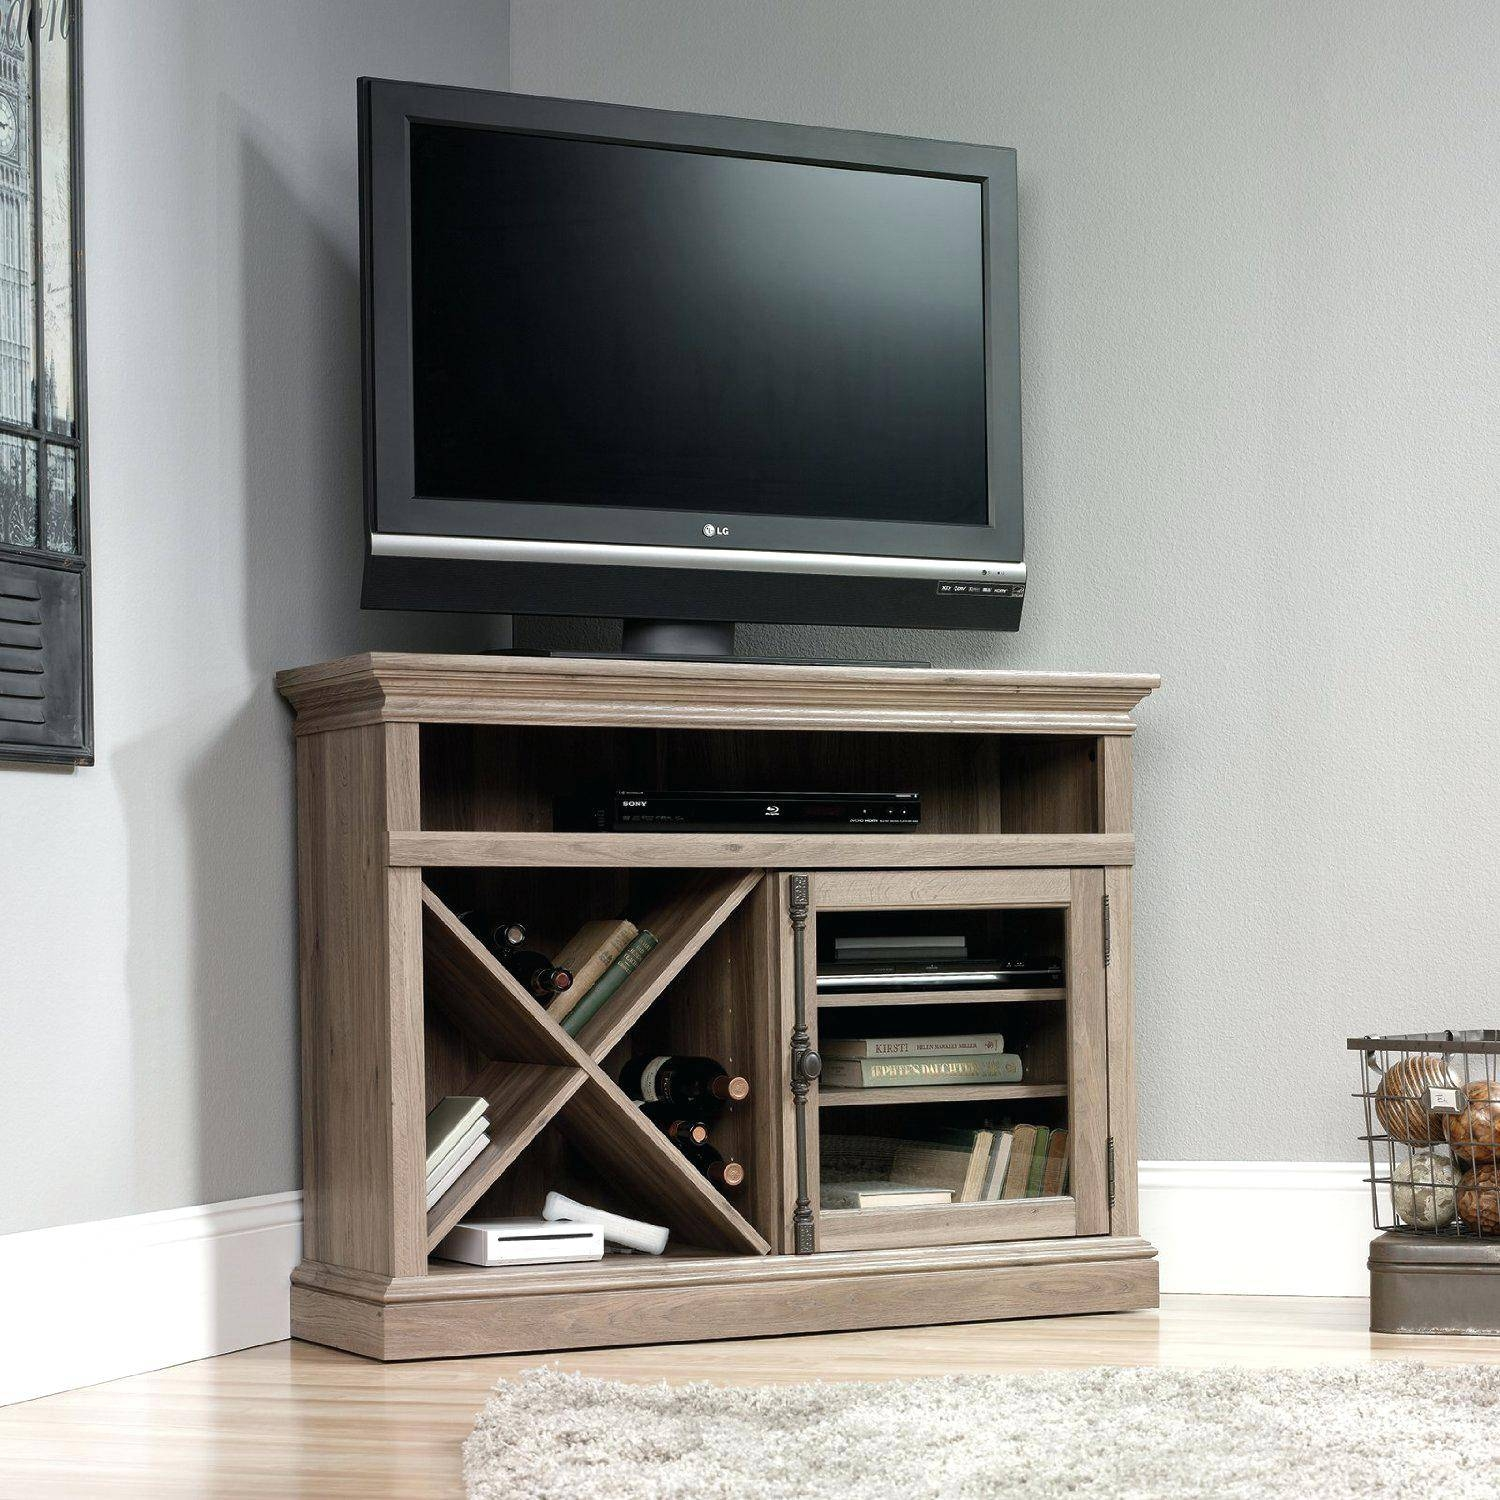 Tv Stand : Furniture Design 150 Enchanting Full Size Of Tv For Cornet Tv Stands (View 11 of 15)